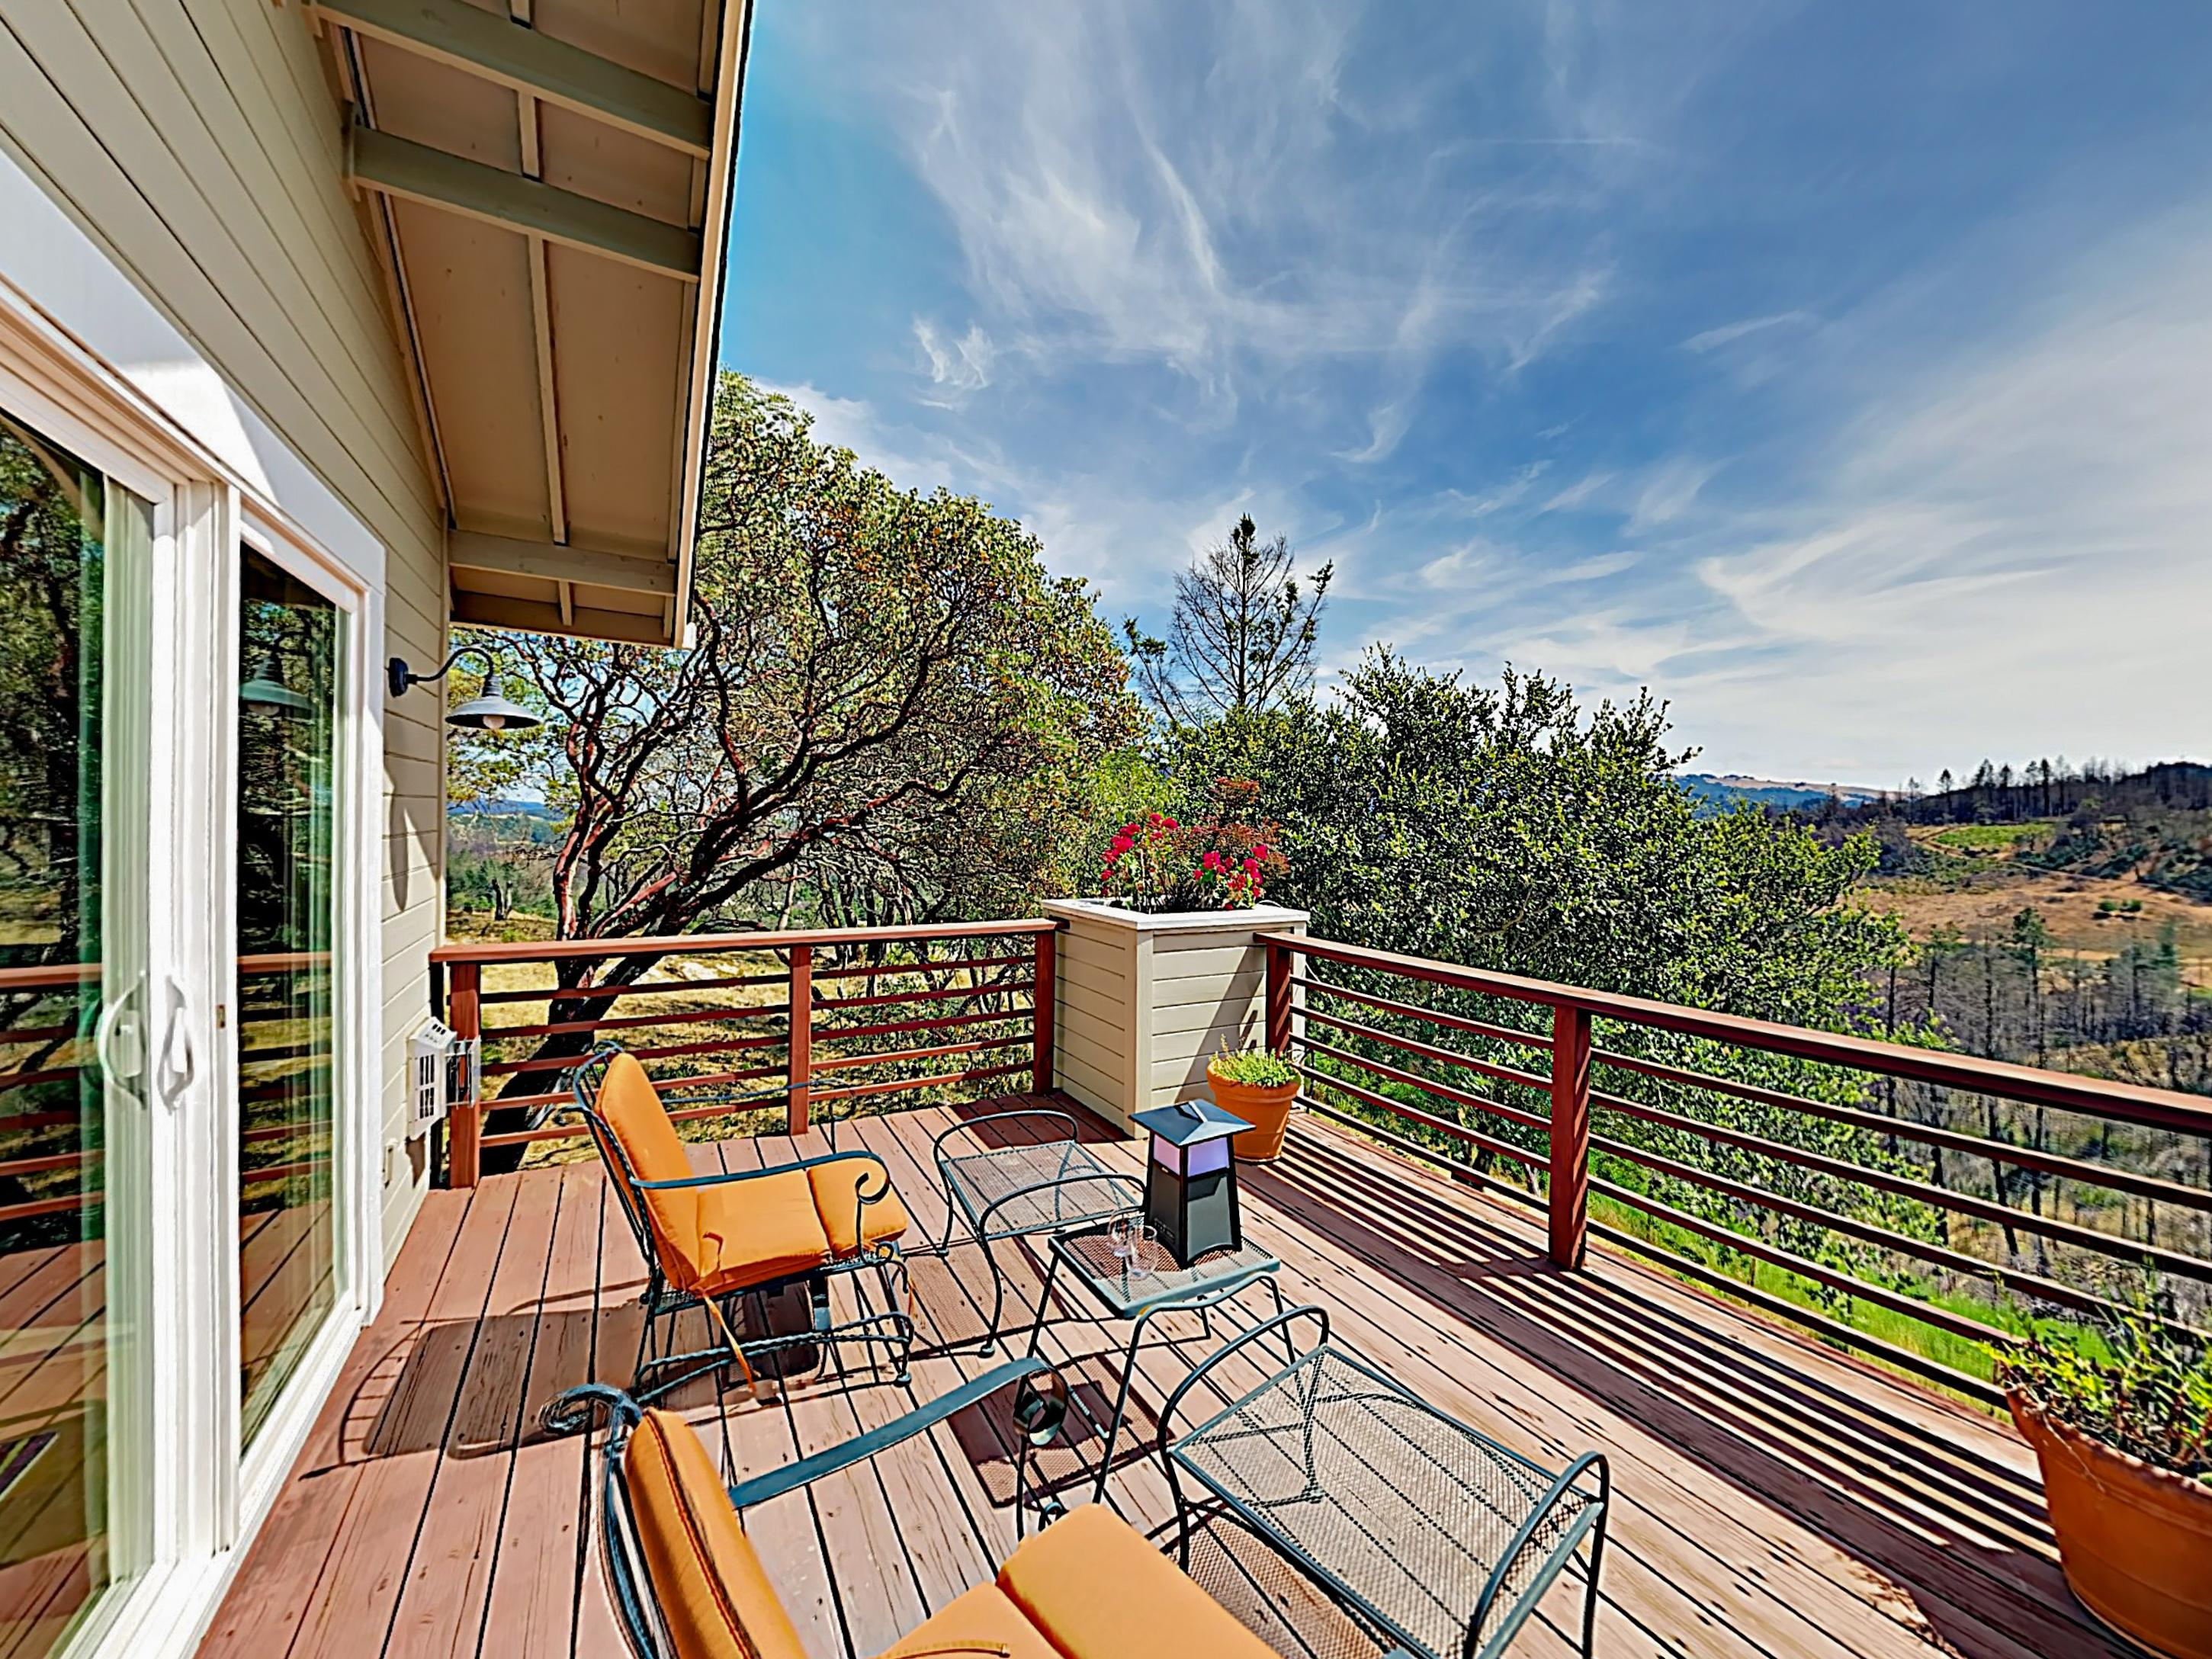 The private cottage deck provides ample mountain views.